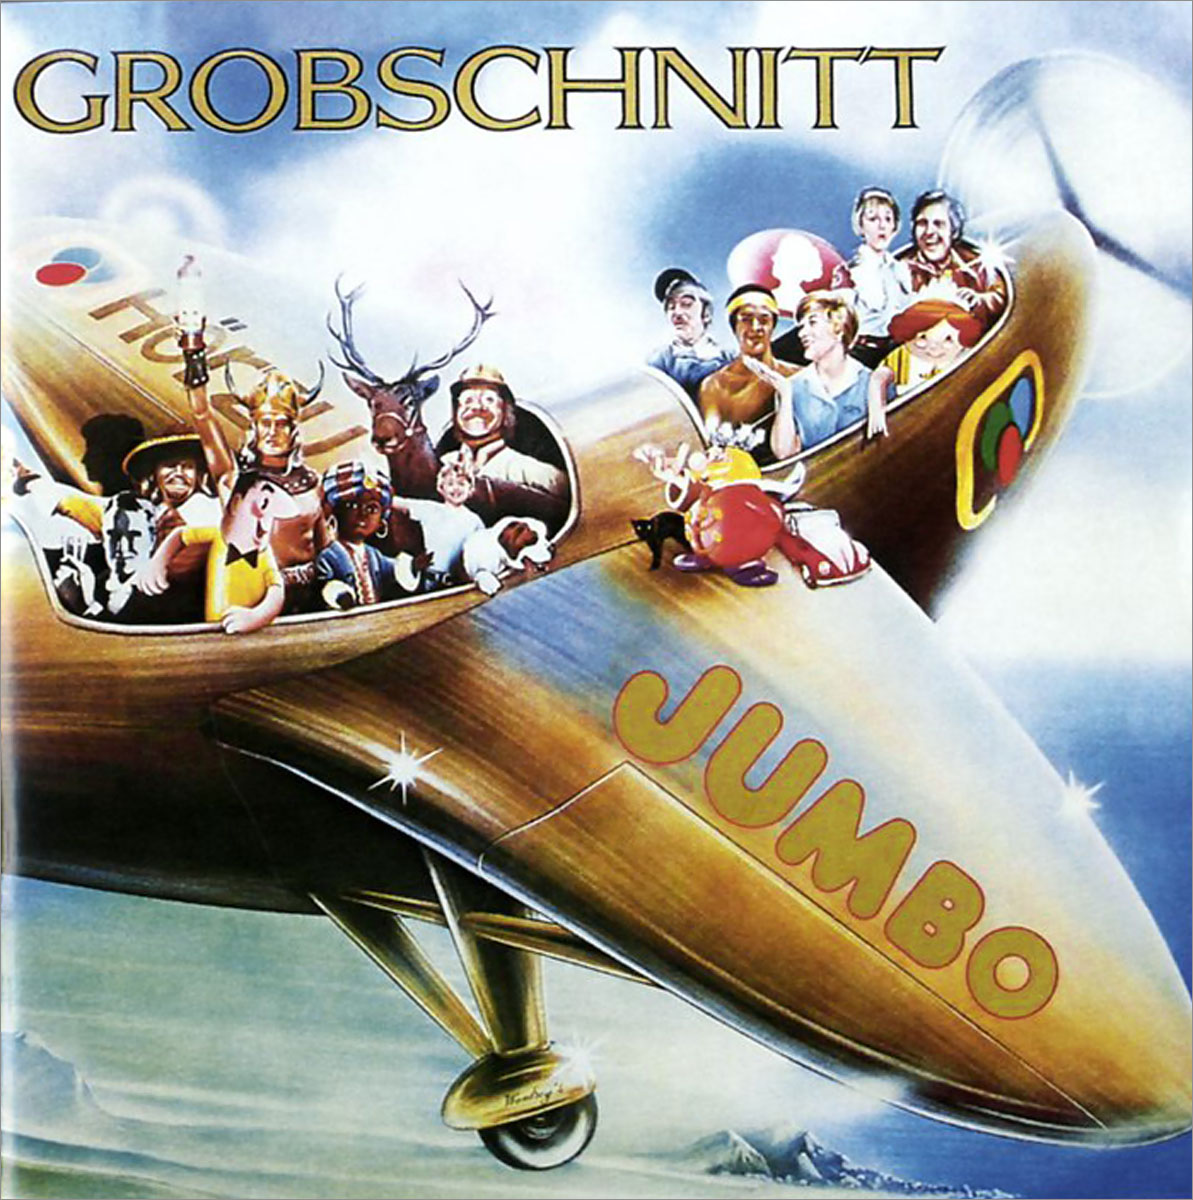 Grobschnitt Grobschnitt. Jumbo grobschnitt grobschnitt volle molle